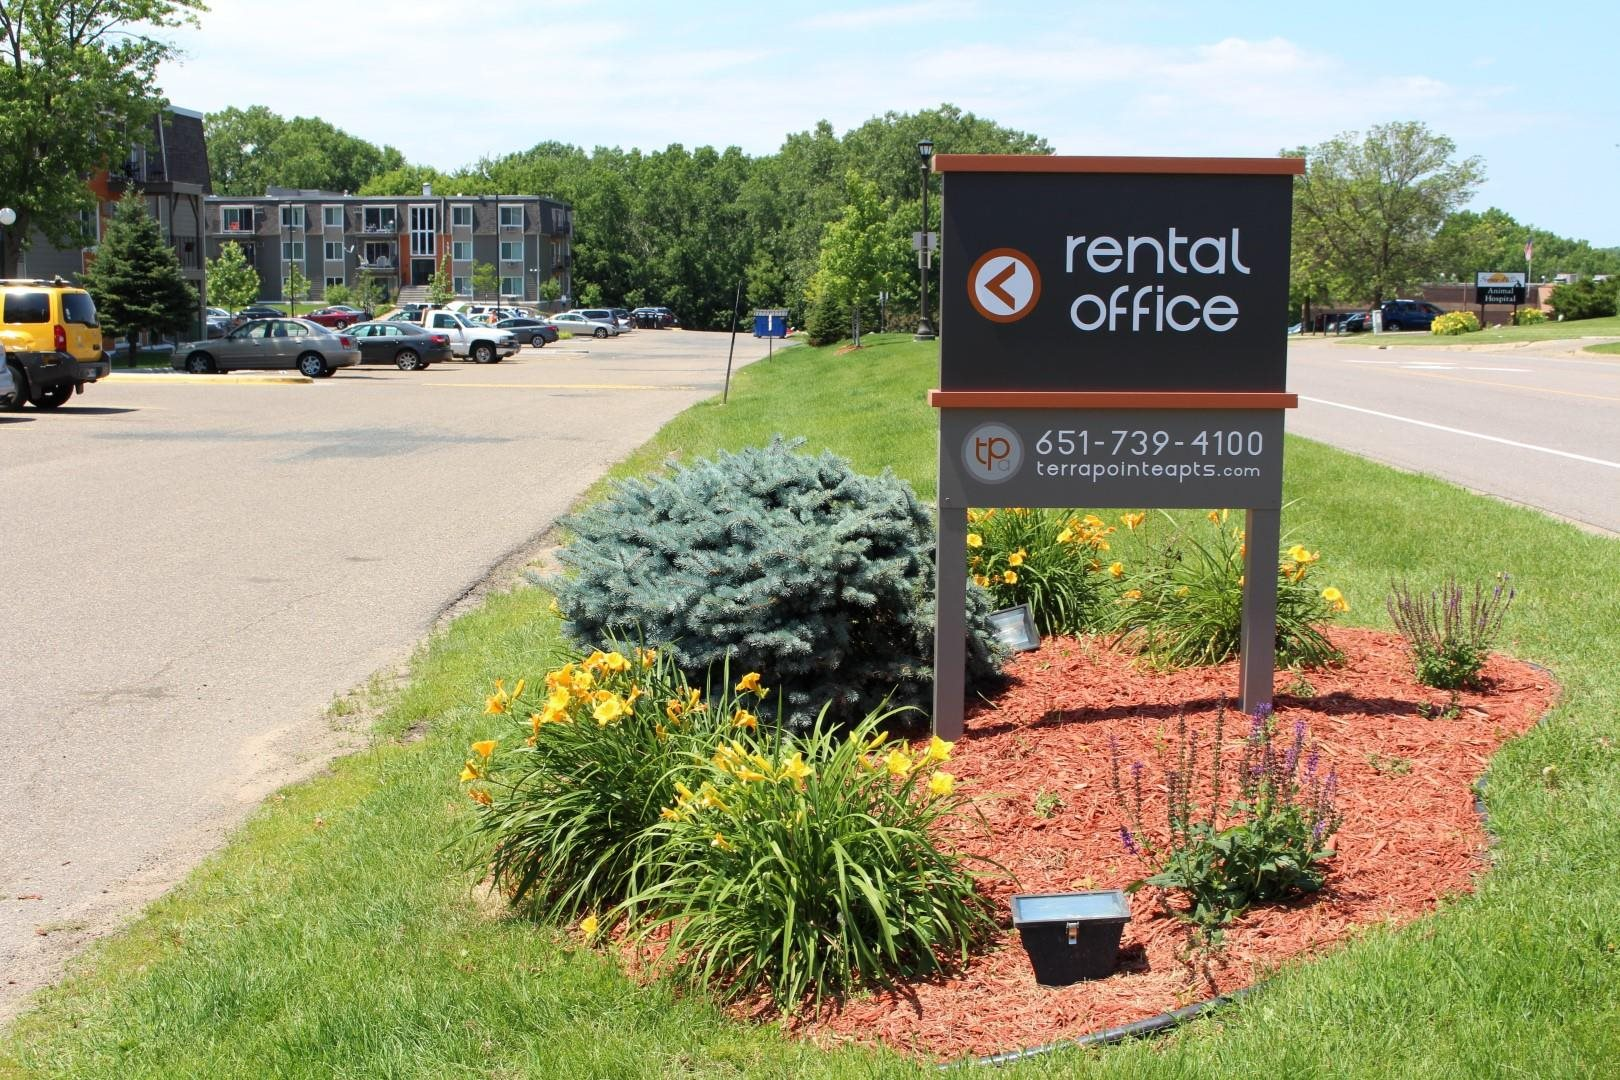 Rental Office at Terra Pointe Apartments, St. Paul